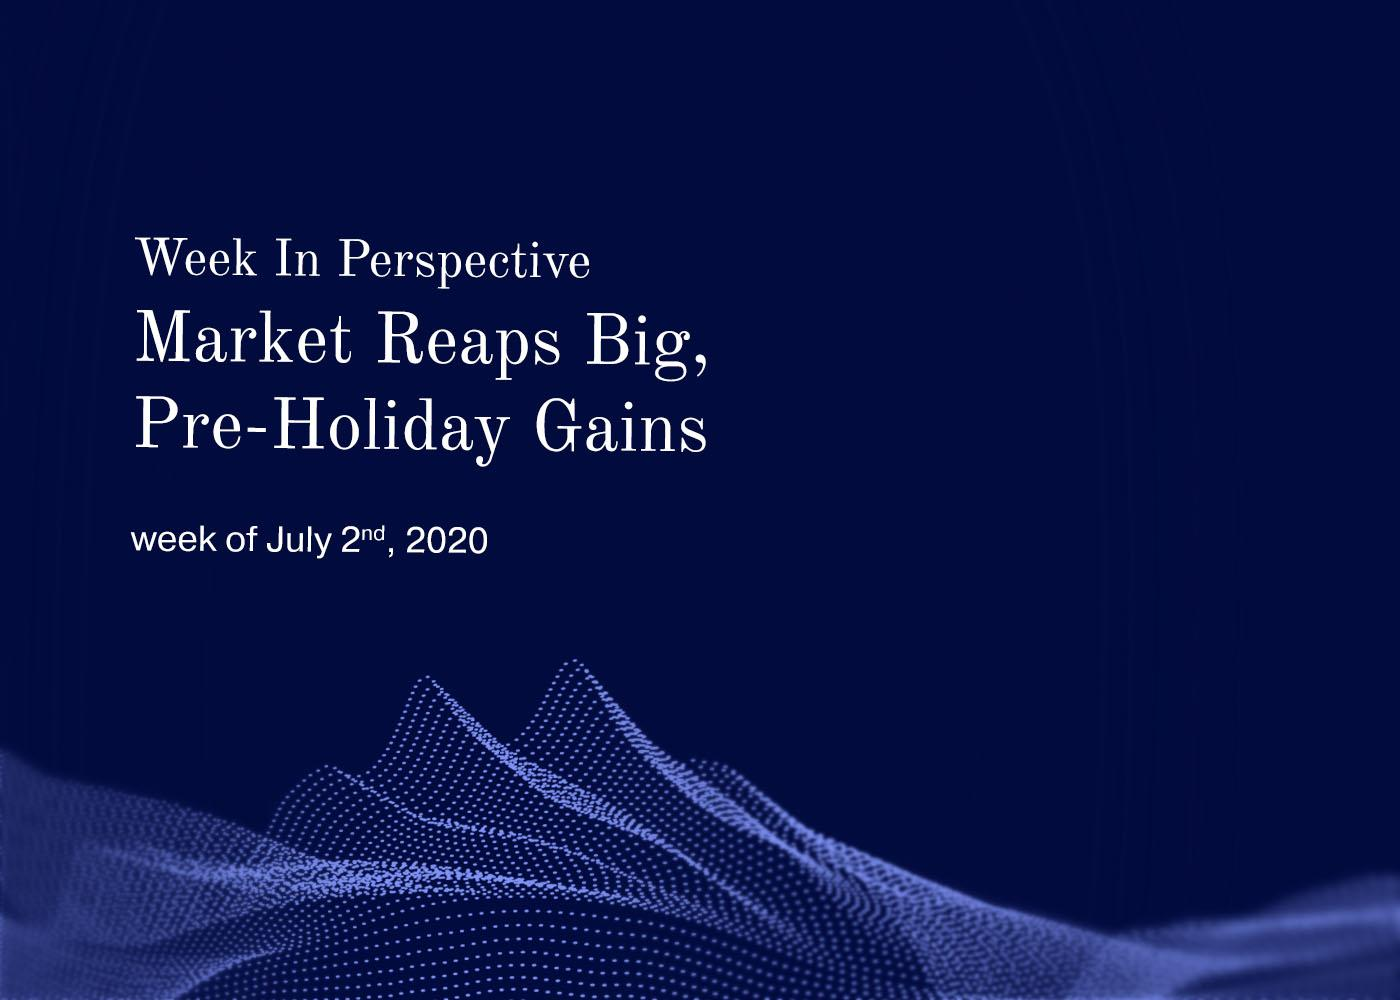 Week In Perspective July 2, 2020:  Market reaps big, pre-holiday gains  Thumbnail